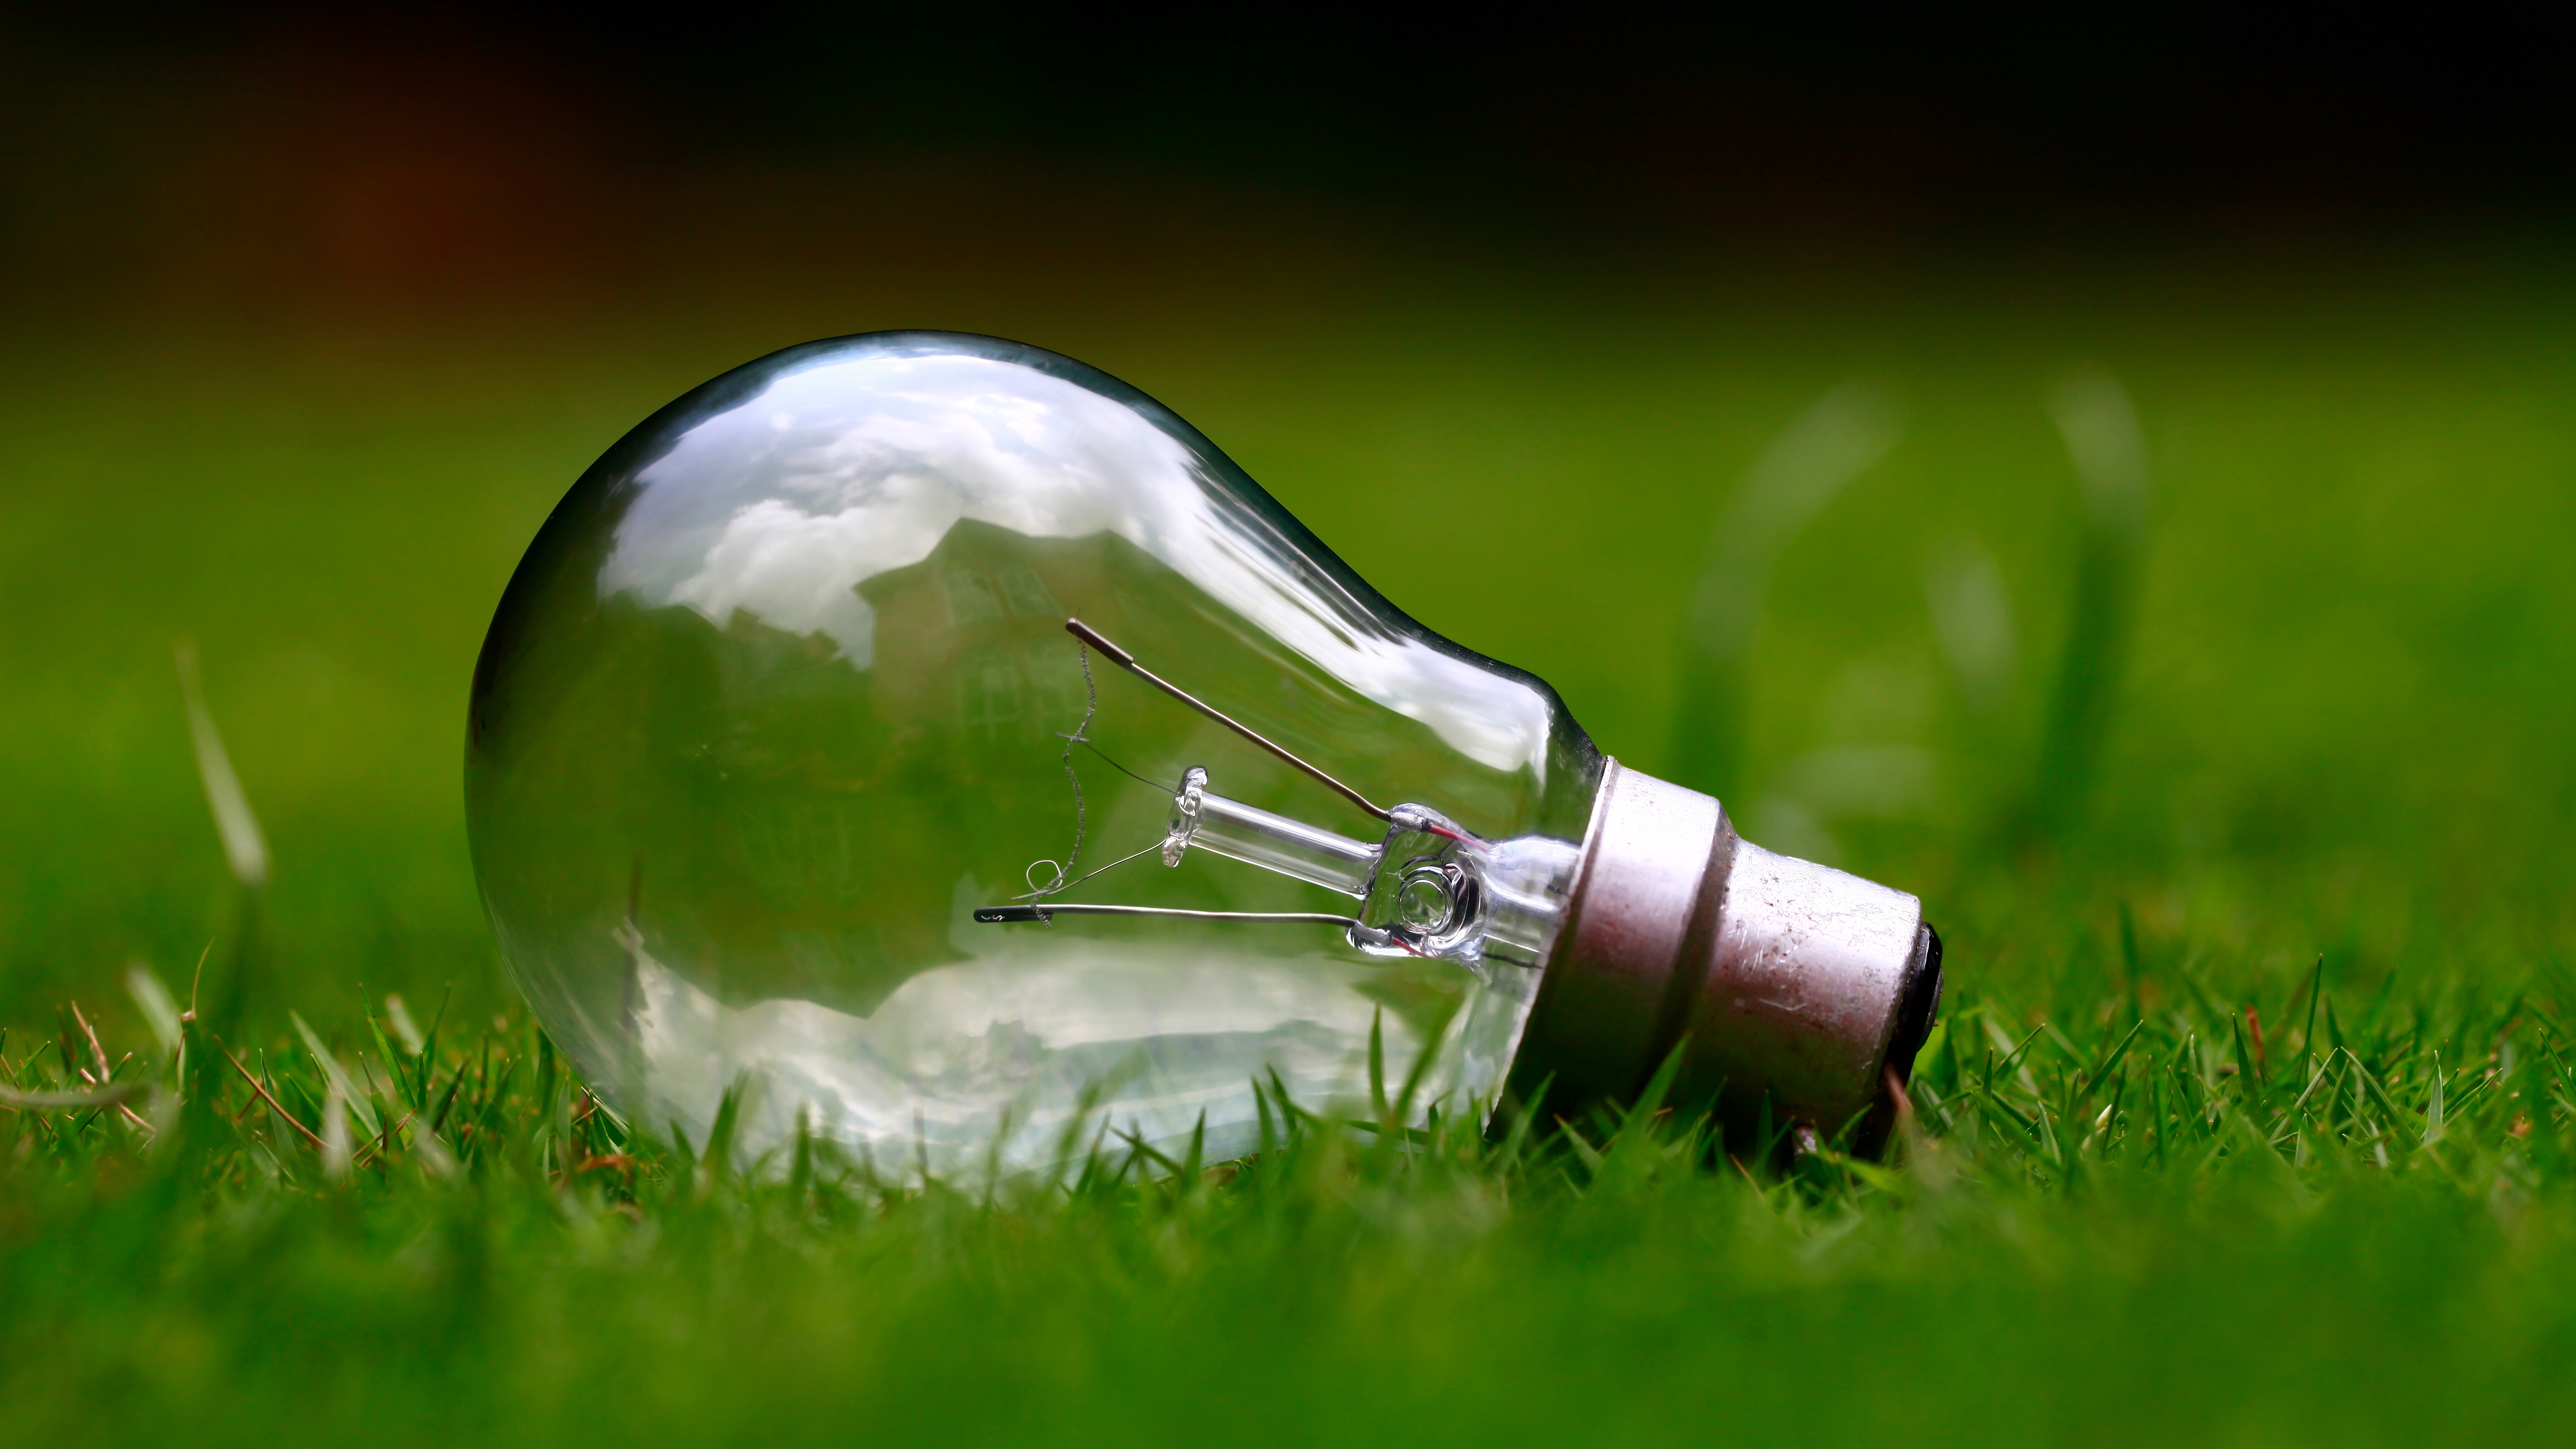 light bulb on side in the grass jpeg